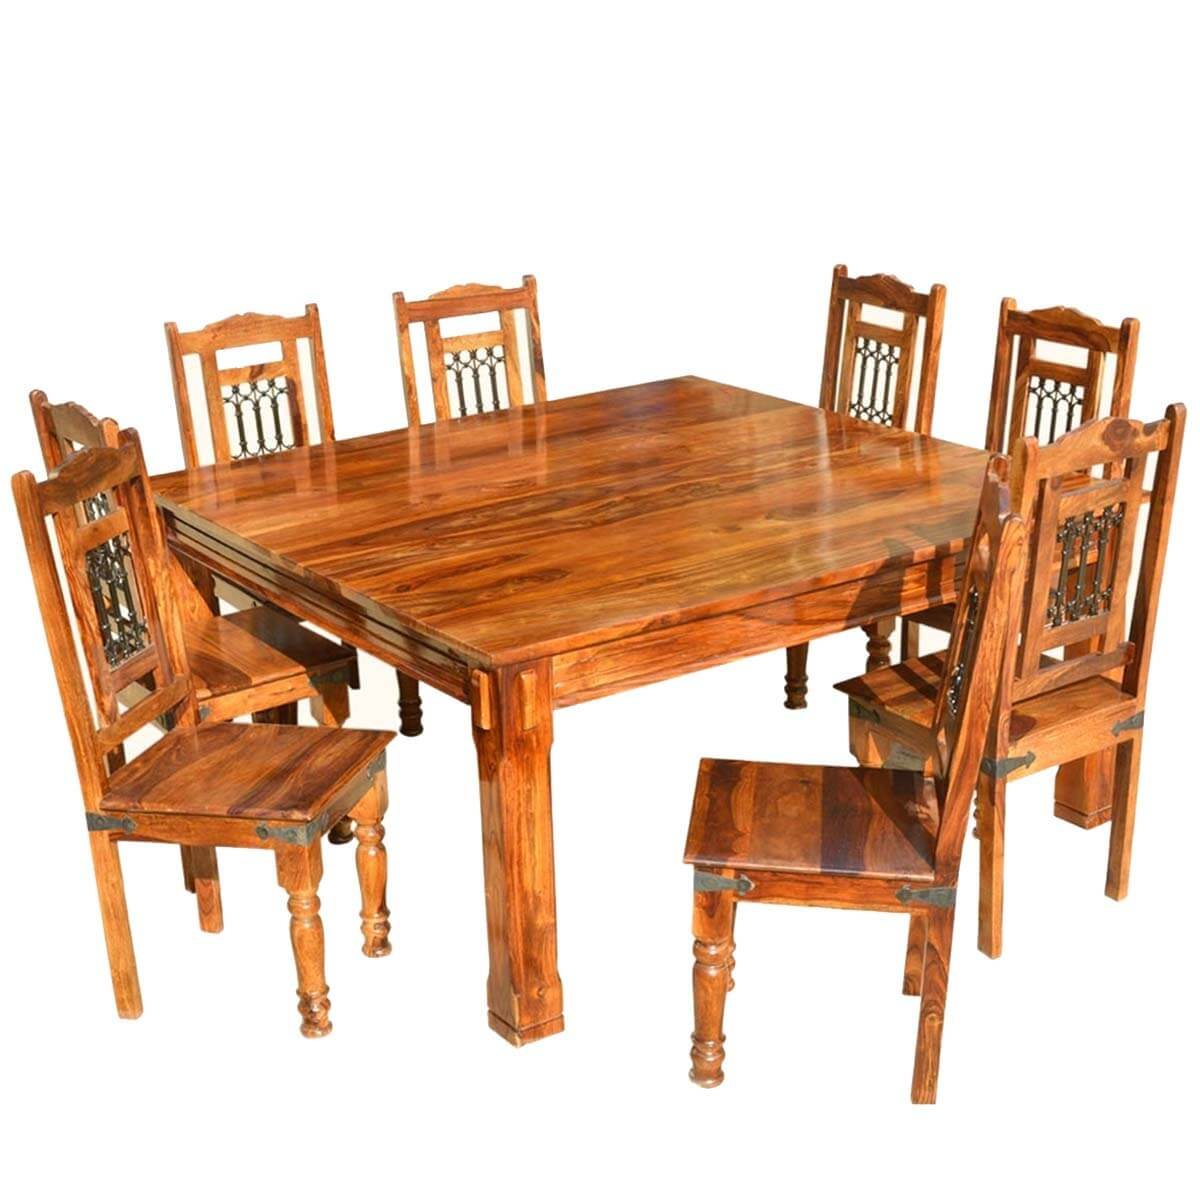 Transitional solid wood rustic square dining table chairs set for Wood dining table set